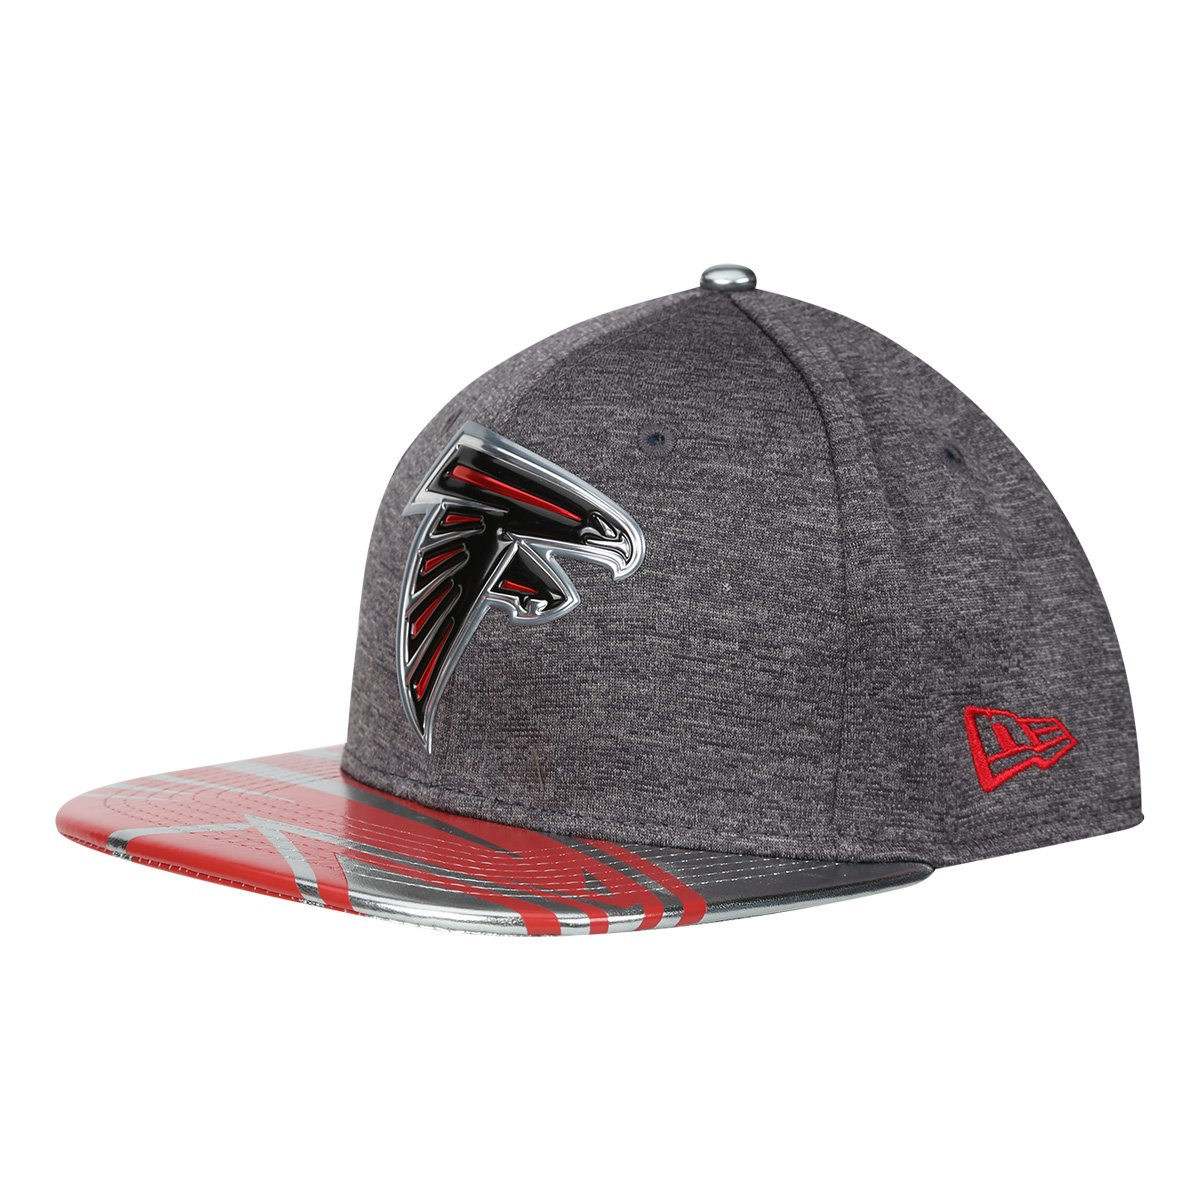 94b3432c76 Boné New Era NFL Atlanta Falcons Aba Reta 950 Original Fit Sn ...